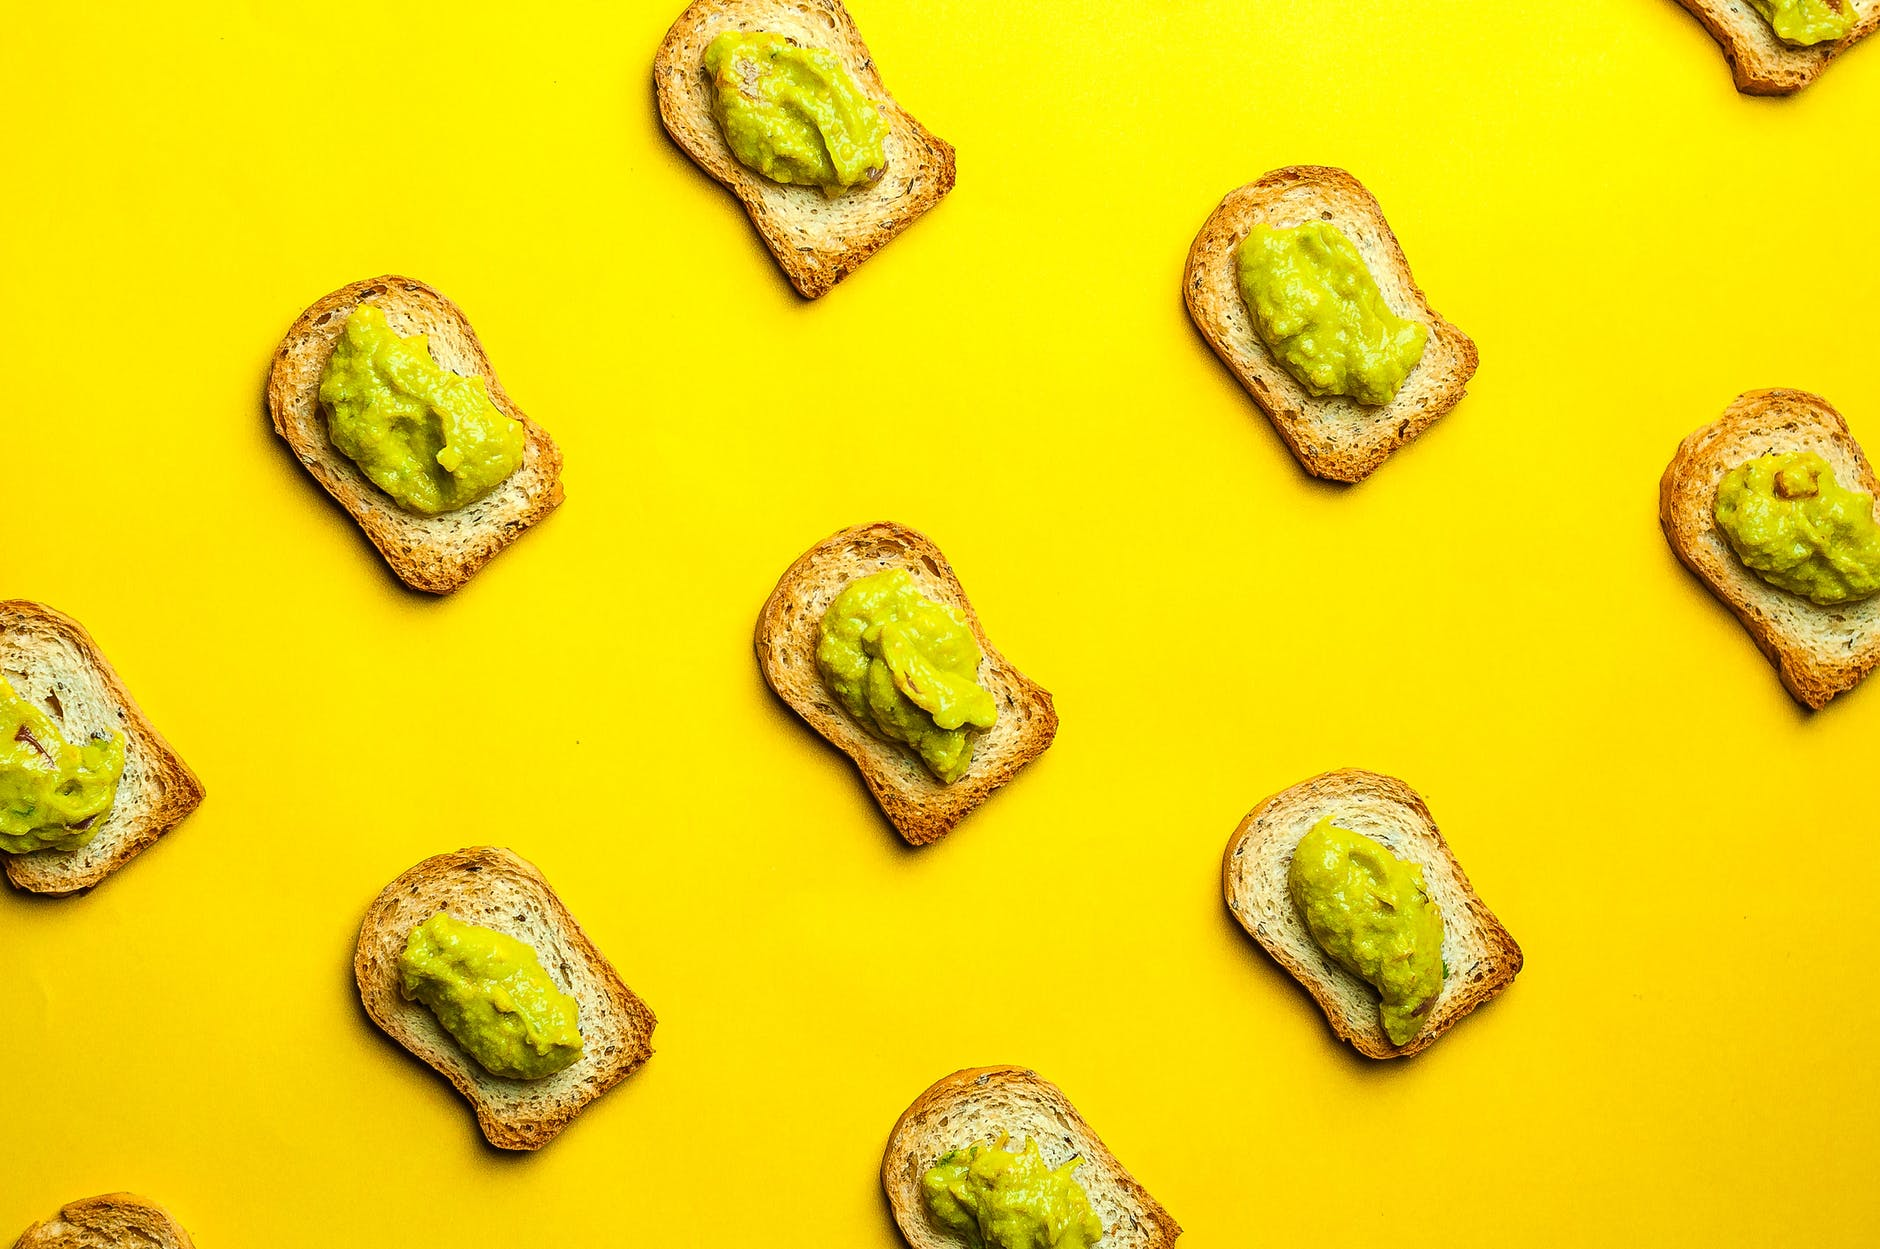 toasts with yummy guacamole placed on yellow background